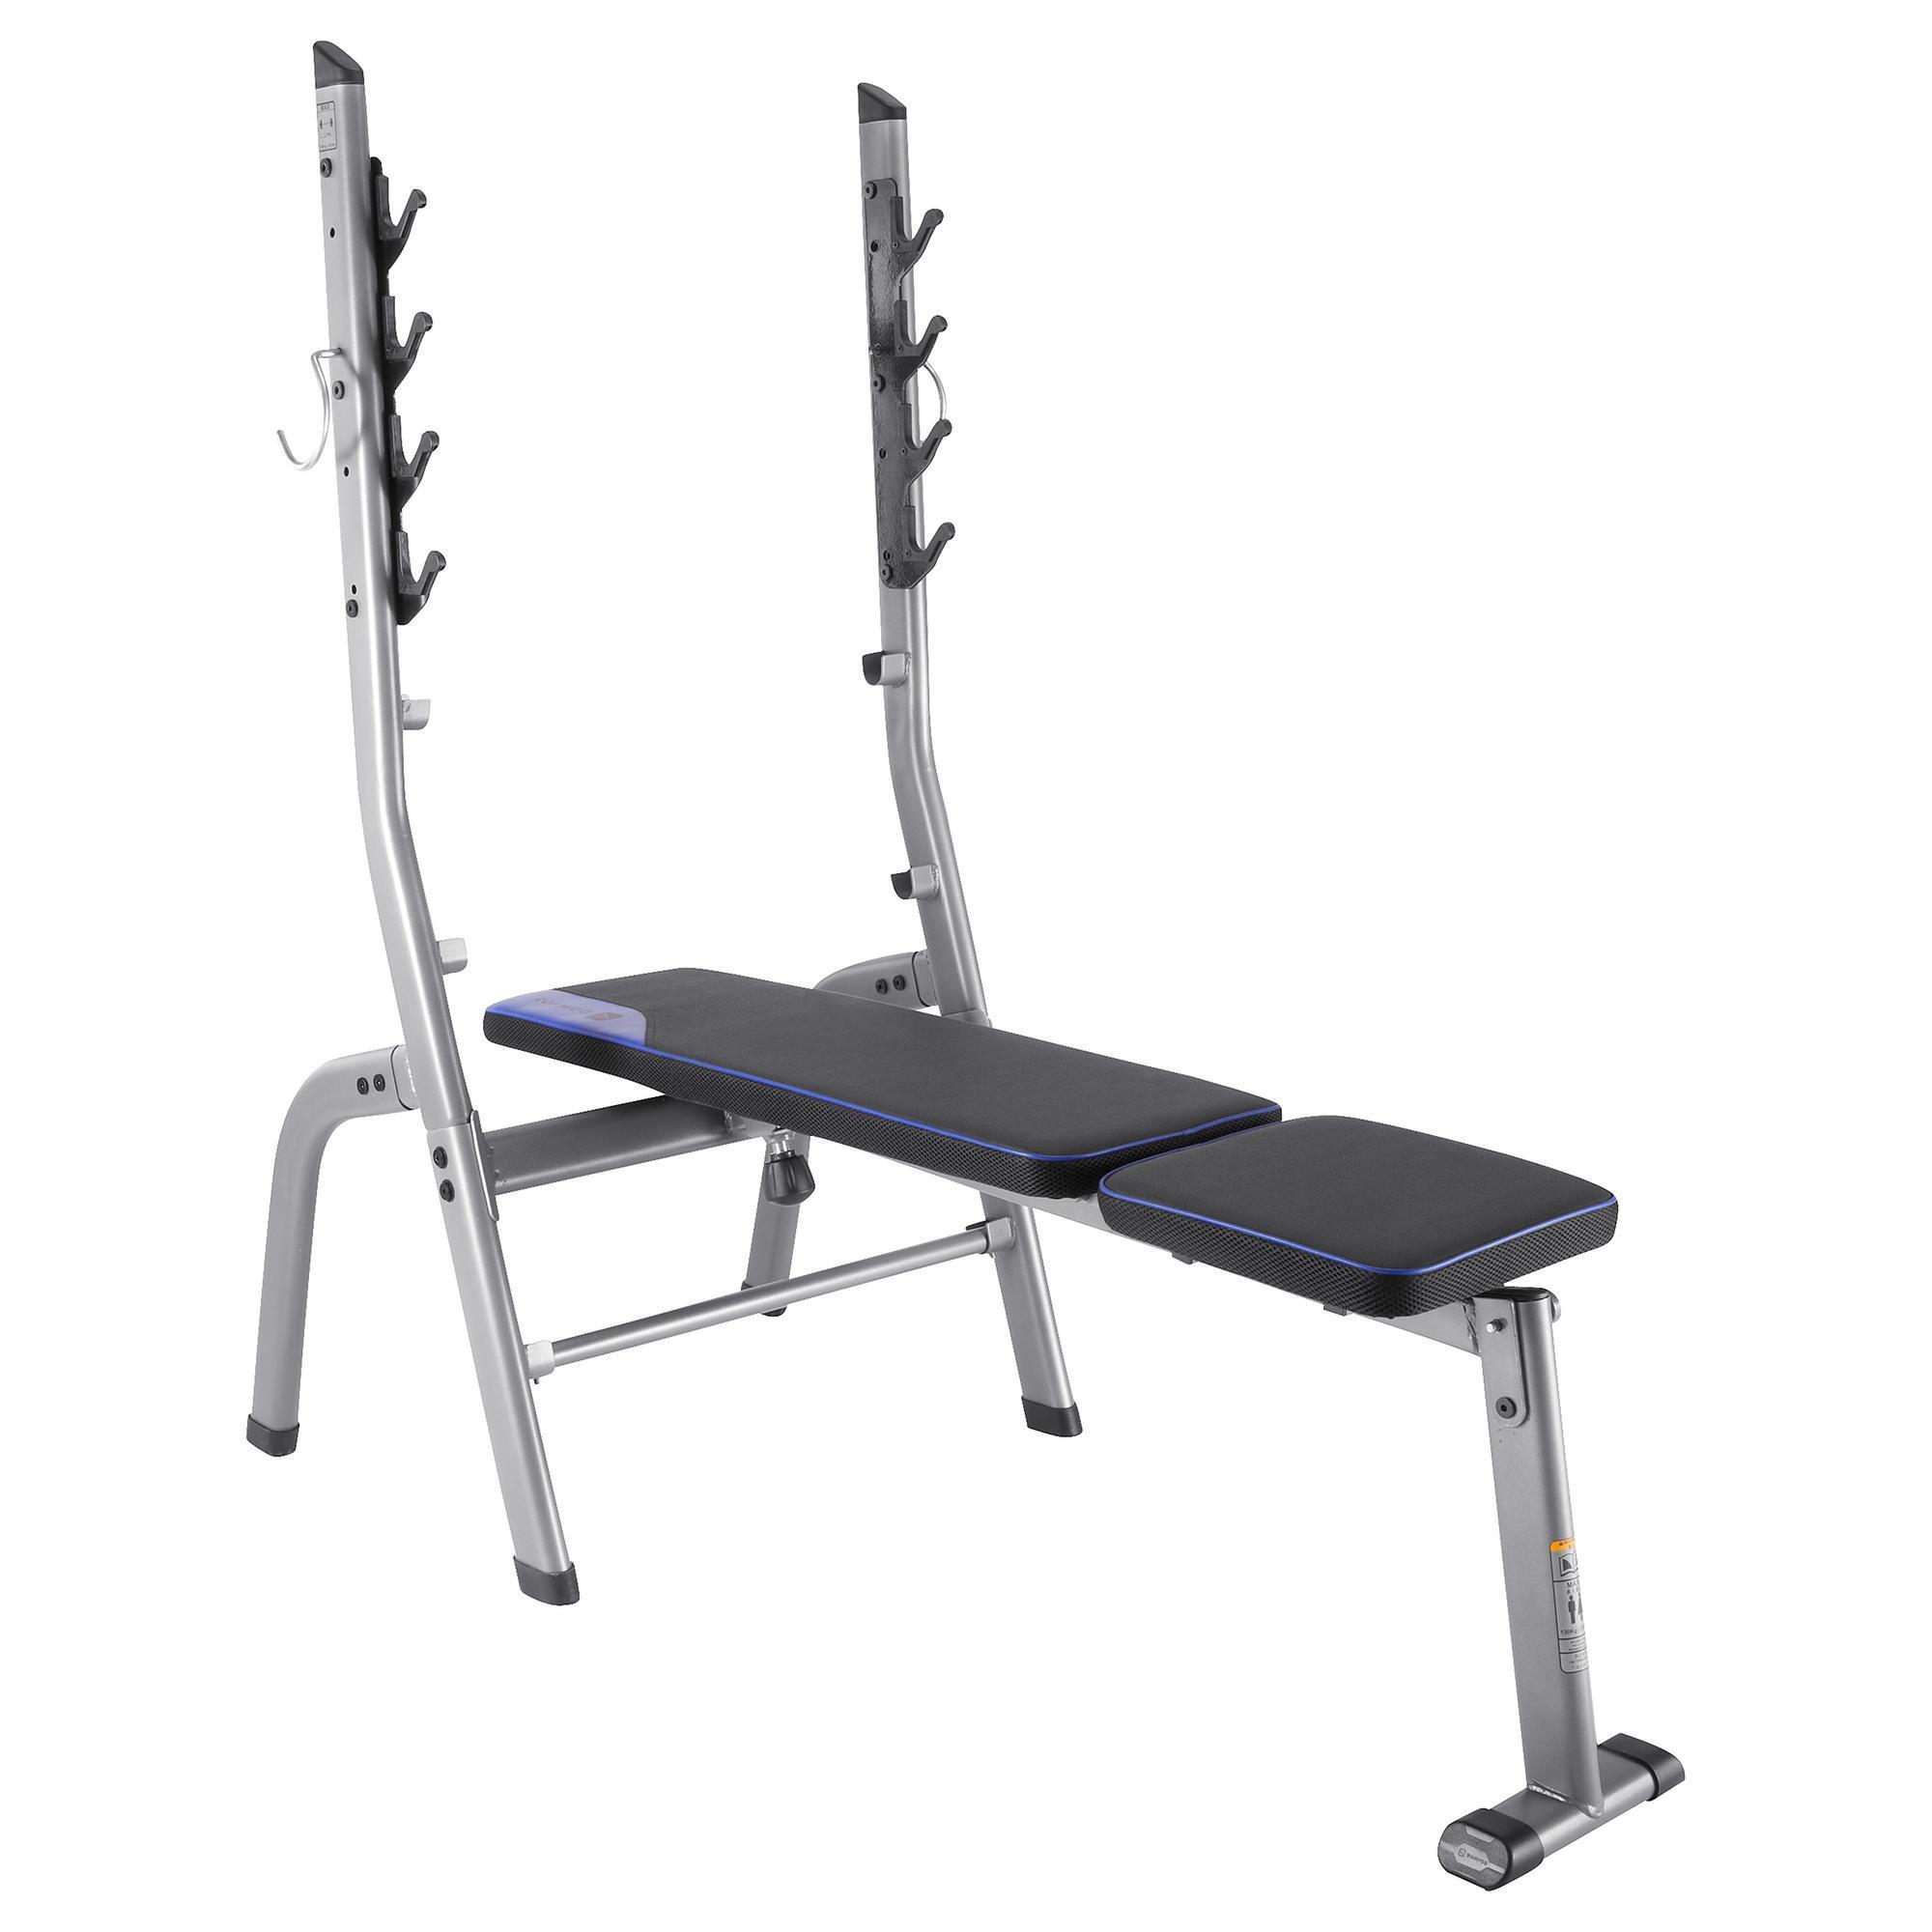 6 EXERCISES WITH A WEIGHTS BENCH | Domyos by Decathlon